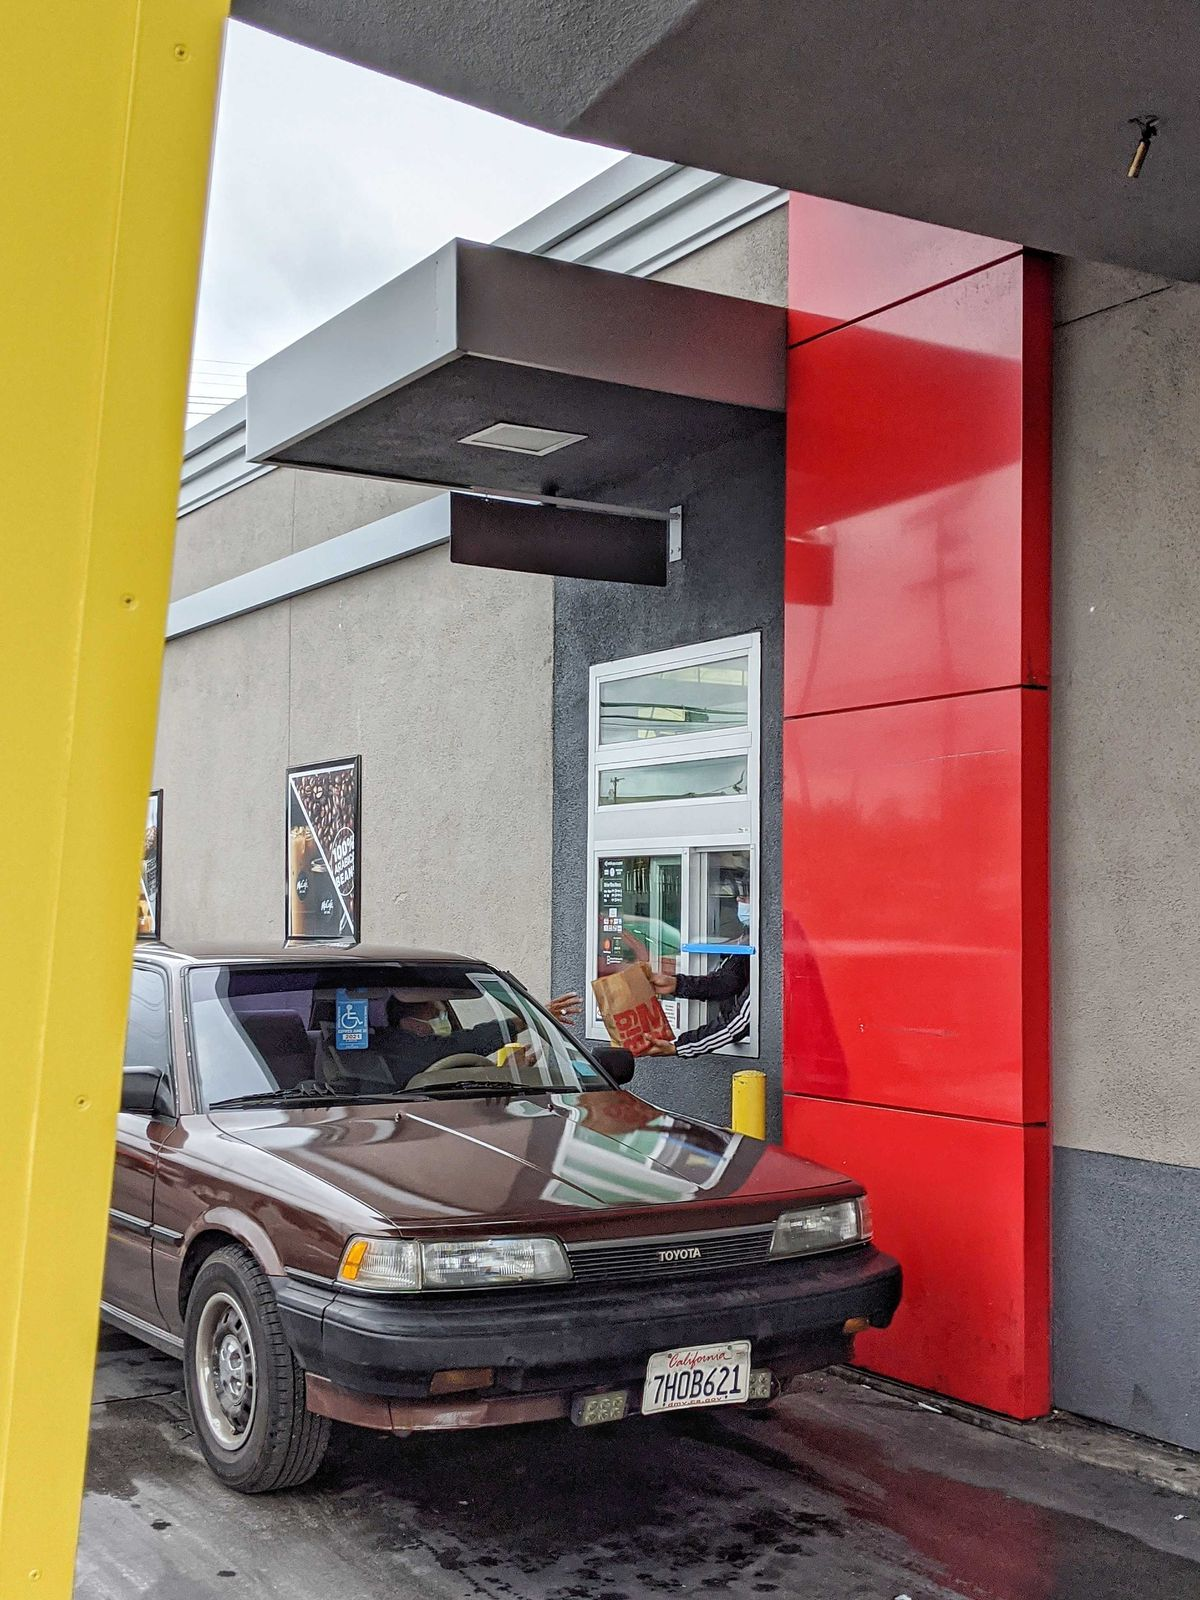 Drive-thru still in operation at the South LA McDonald's on April 6, 2020